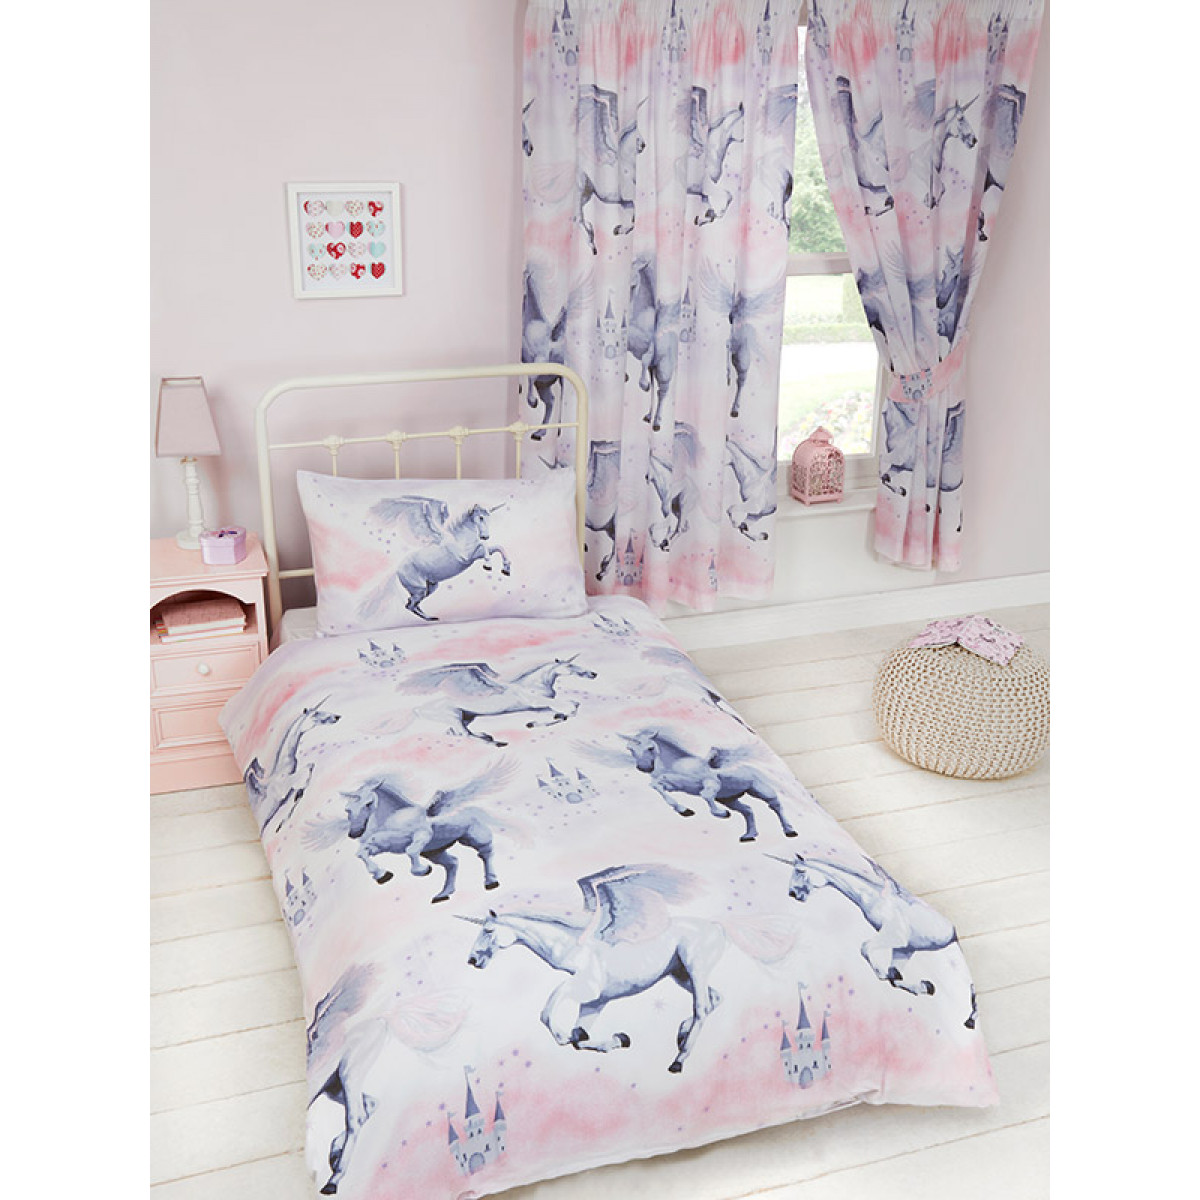 Stardust Unicorn Junior Duvet Cover Bedding Bedroom Quilt